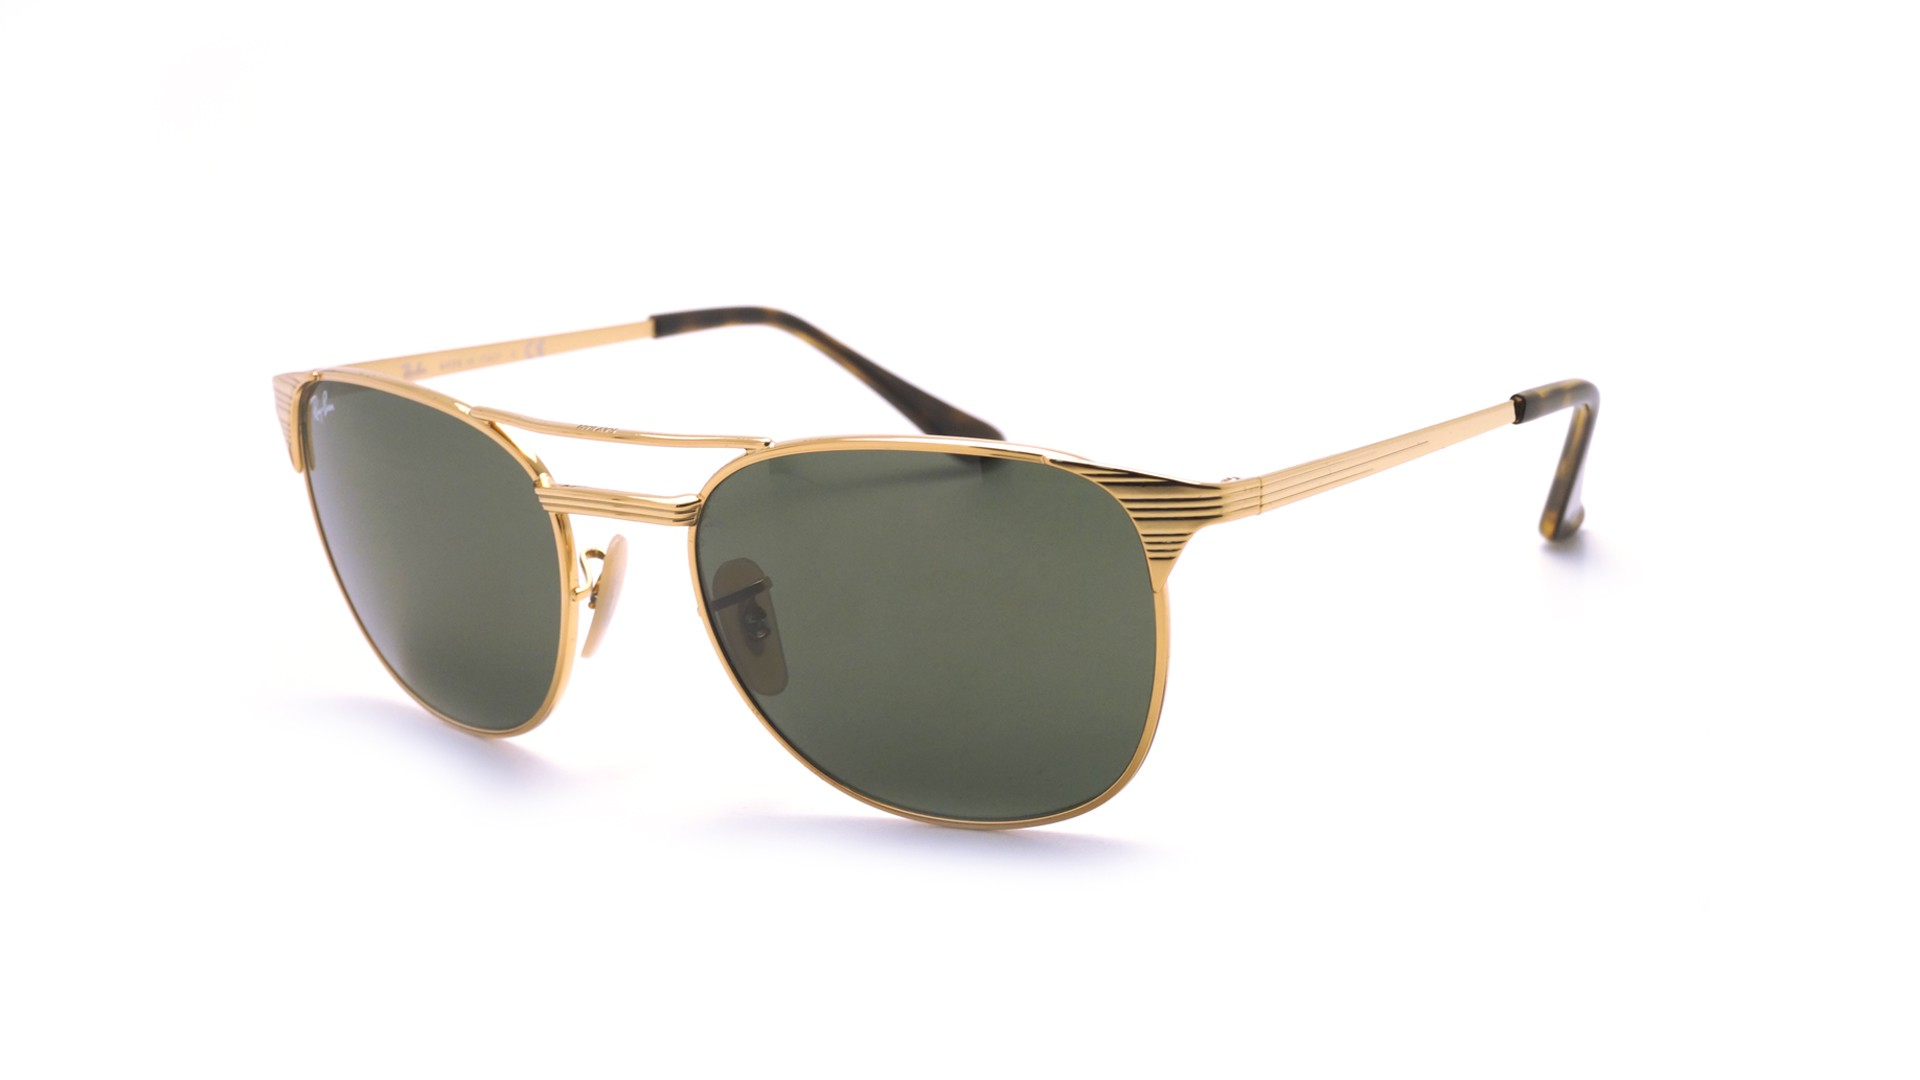 35f222484c Sunglasses Ray-Ban Signet Gold G-15 RB3429M 001 55-19 Medium